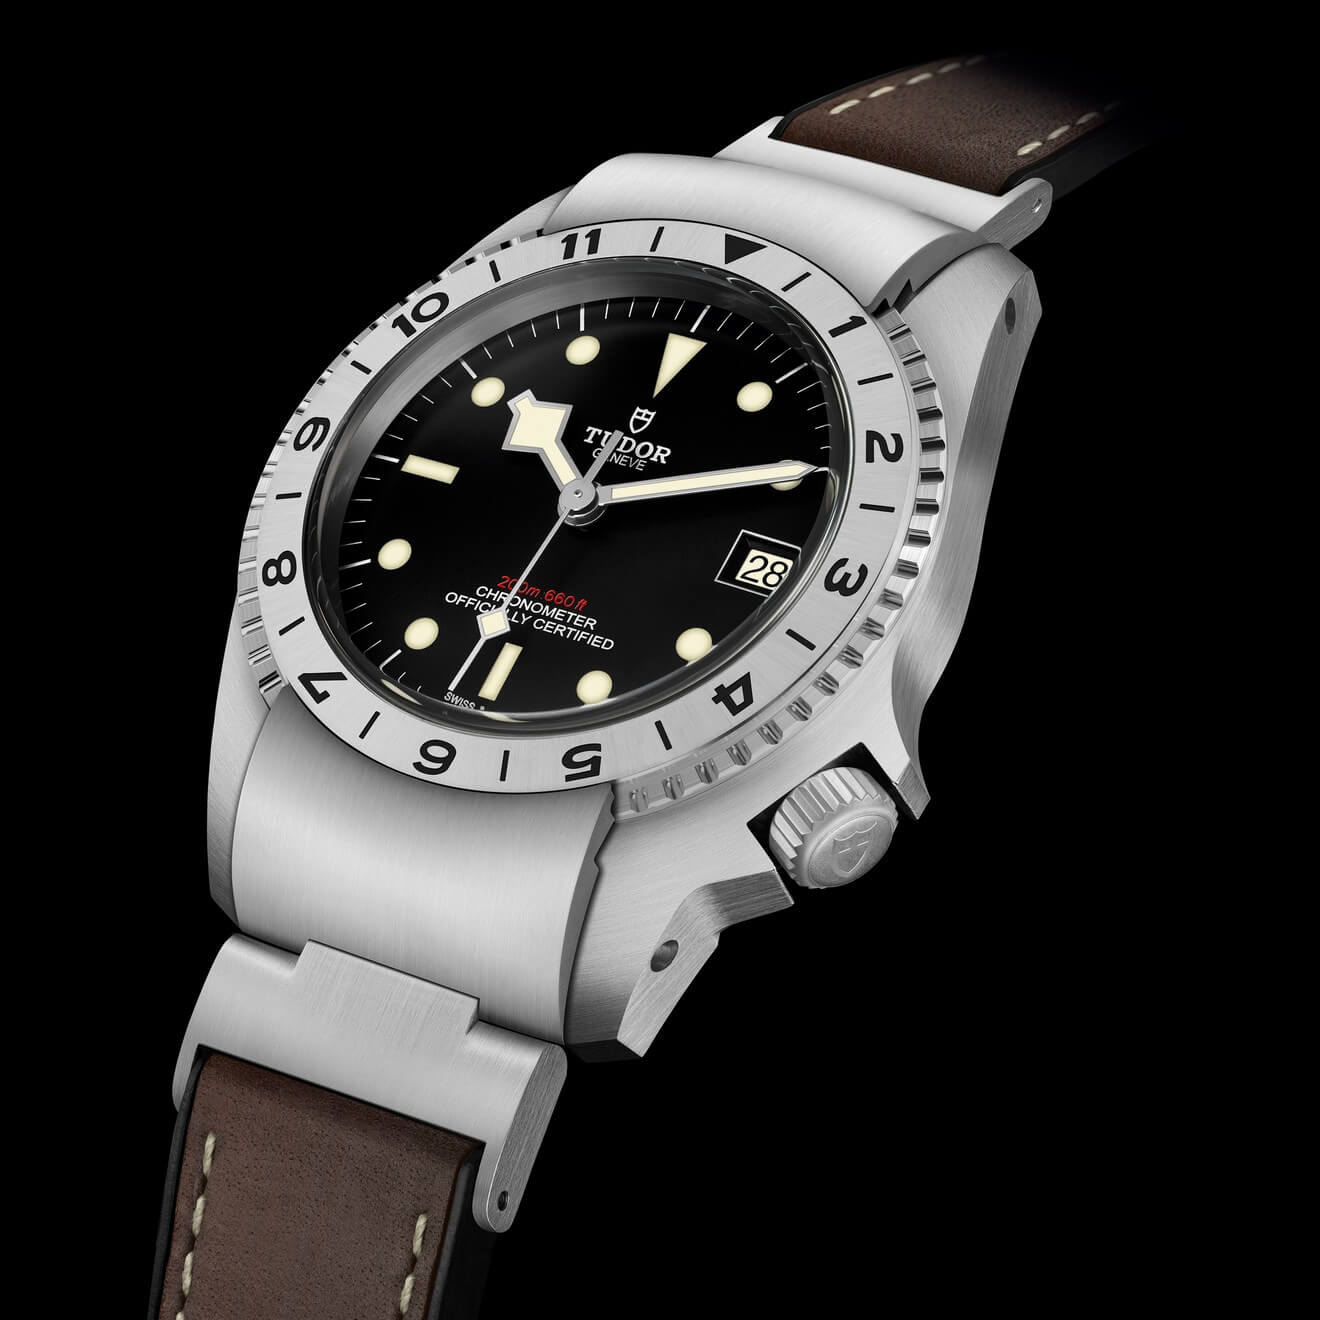 Tudor Black Bay P01 70150 Baselworld 2019 |Mamic 1970